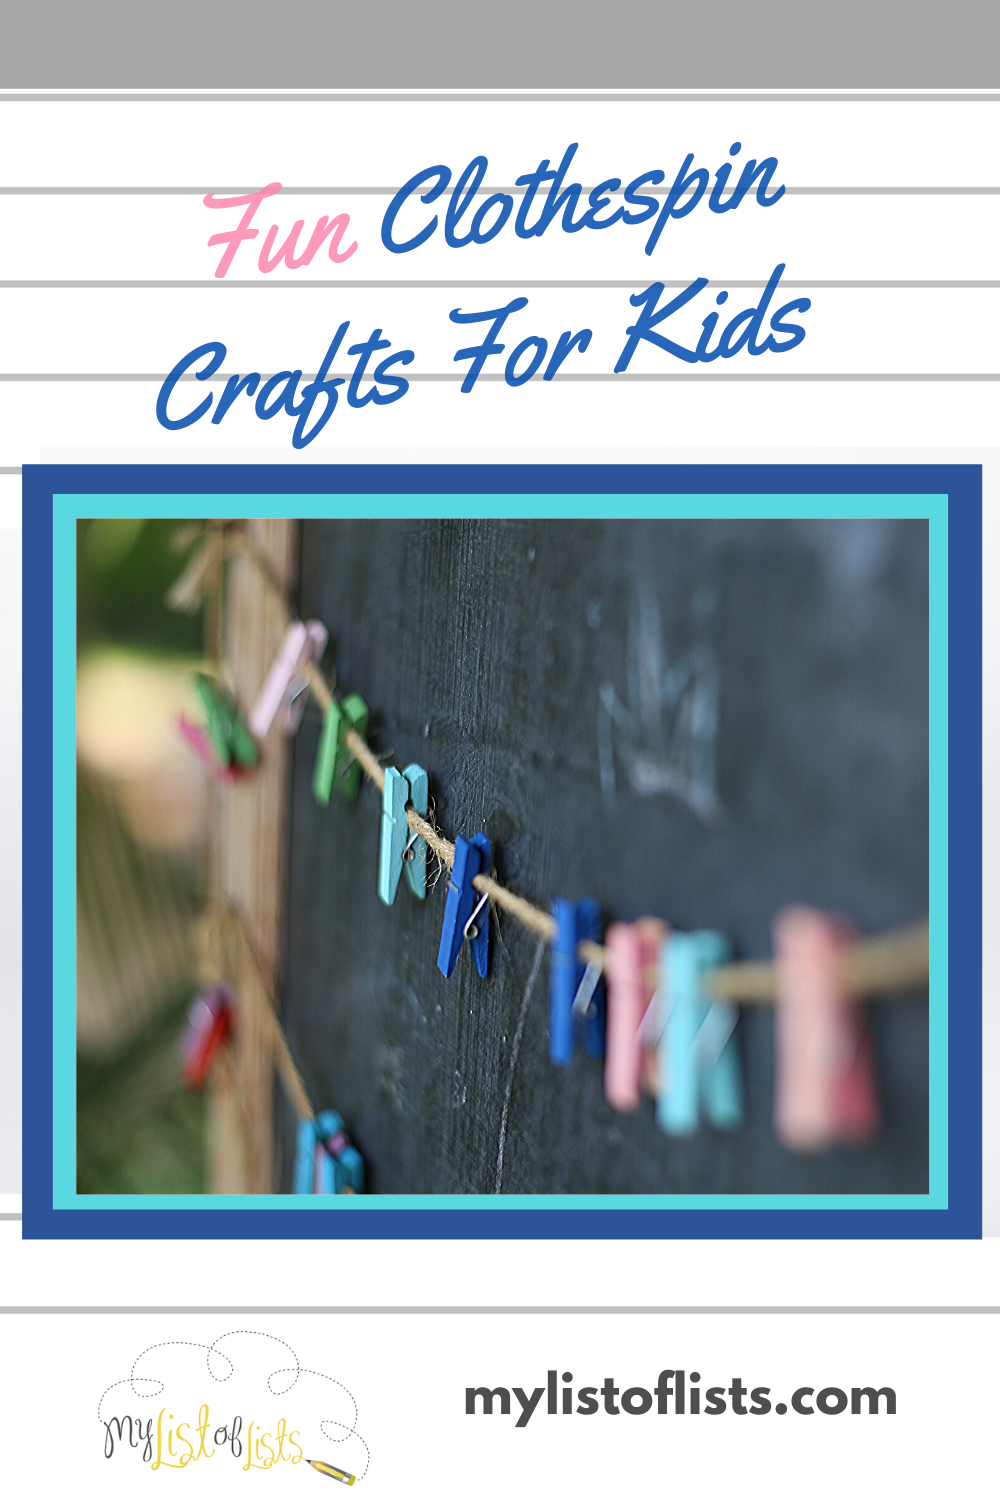 Want a fun project for the kids? You can even join them. Learn how easy and fun it is to make clothespin crafts for kids. Not to mention they are incredibly cheap. Some paint, paper, glue, the kids and you and you will be ready to begin. But first read the post for some easy ideas. #kidscrafts #kidsideas #activitiiesforkids #mylistofllistsblog